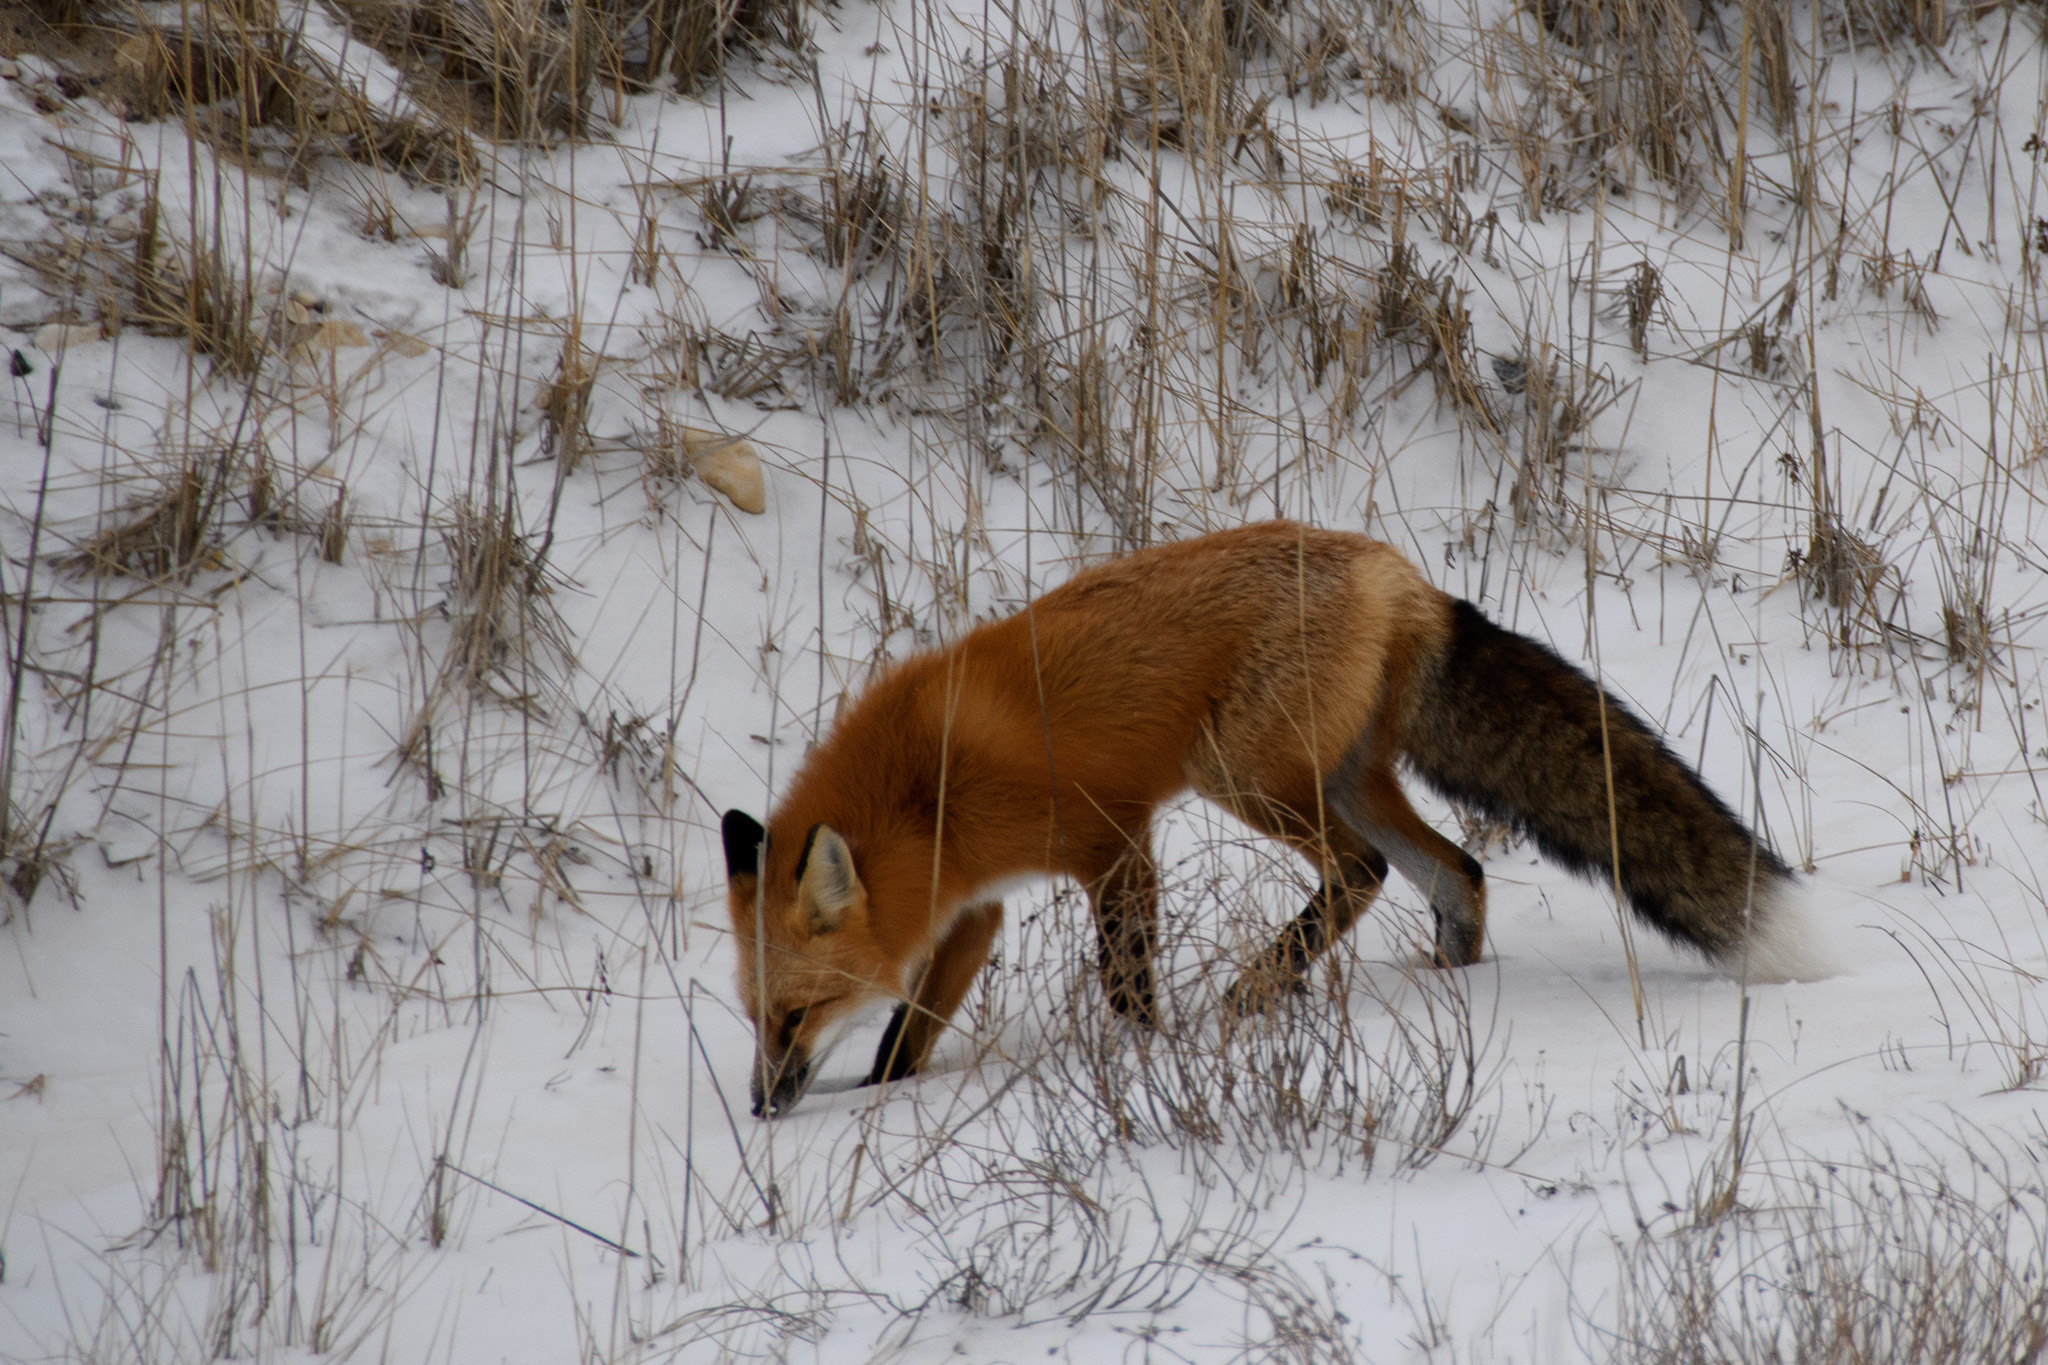 A red fox with a spectacular fluffy tail, snuffled here and there unconcerned about our bus of observers on the road.